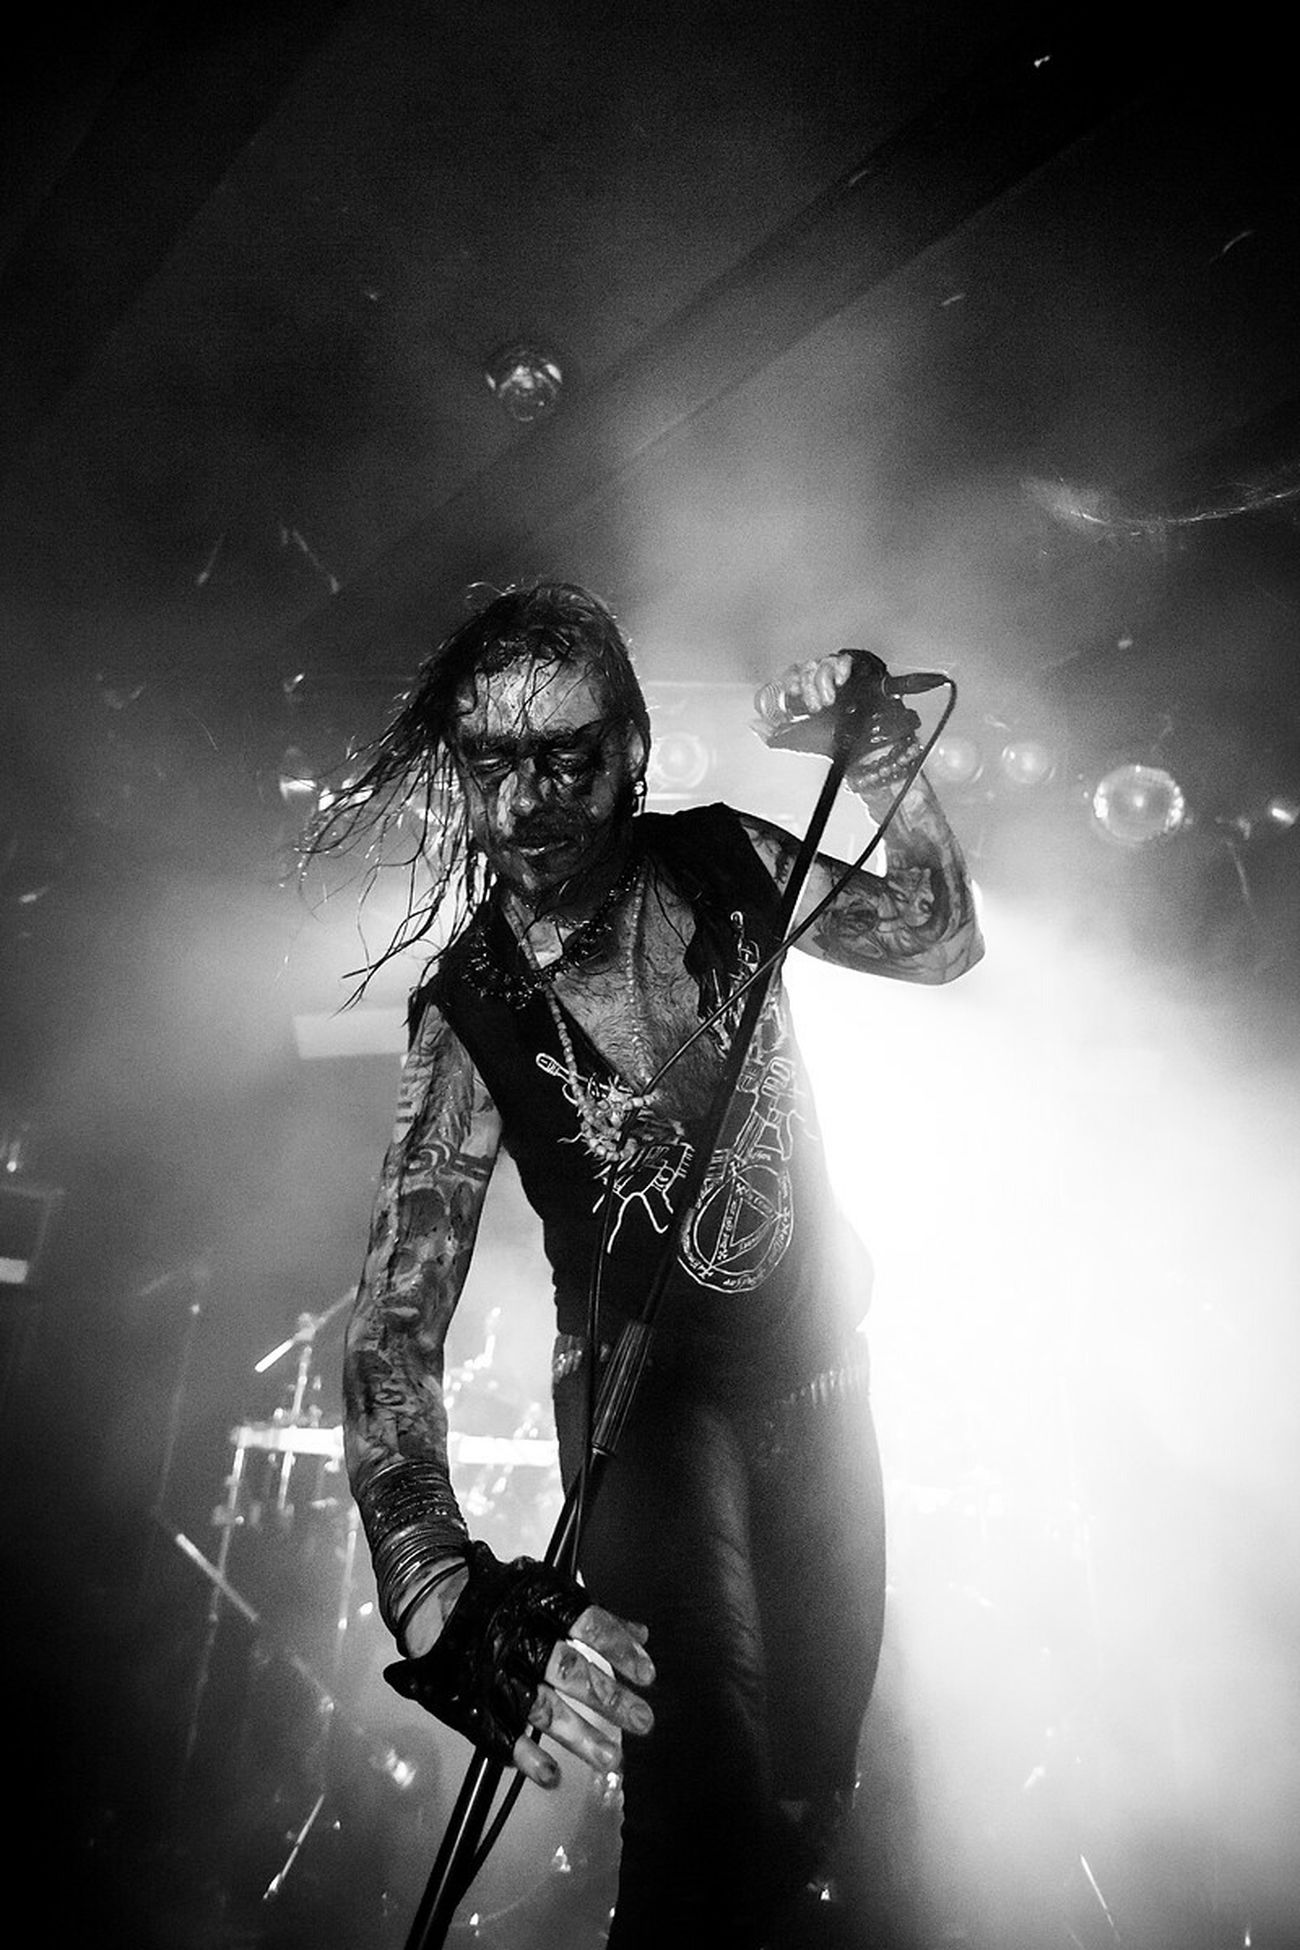 The Norwegian Black Metal band One Tail, One Head performing at the Festival Beyond The Gates. Concert Concert Photography Music Music Photography  Bergen Norway